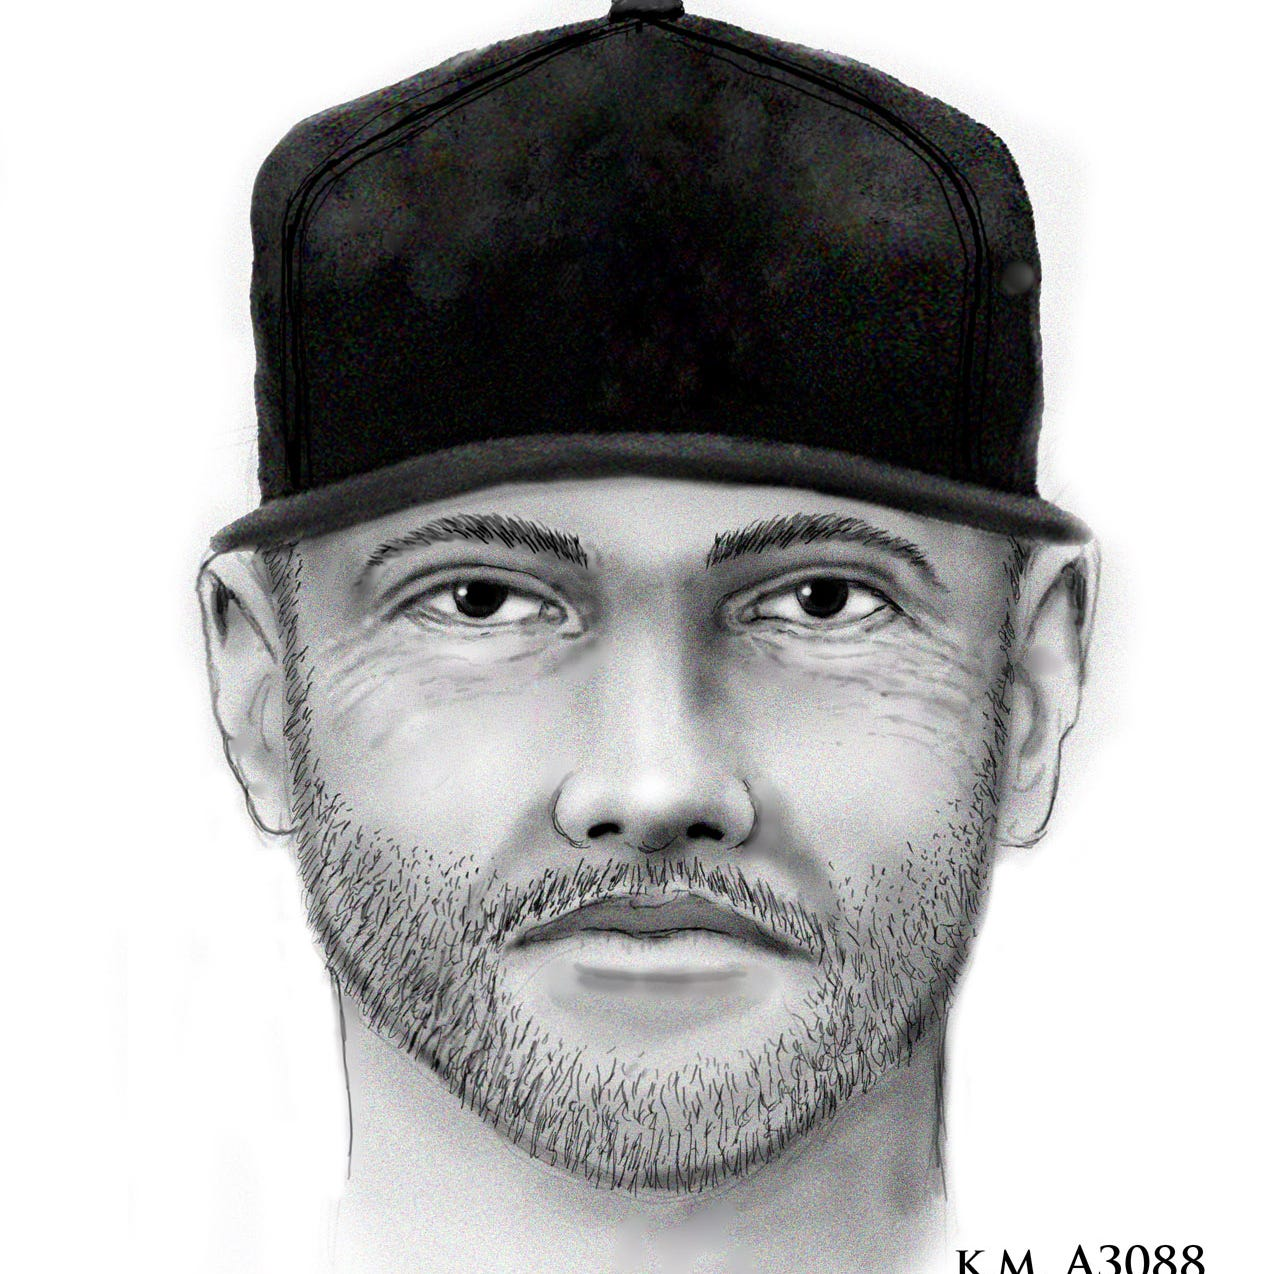 10-year-old girl shot with her father in driveway in Phoenix has died; police release sketch of shooter